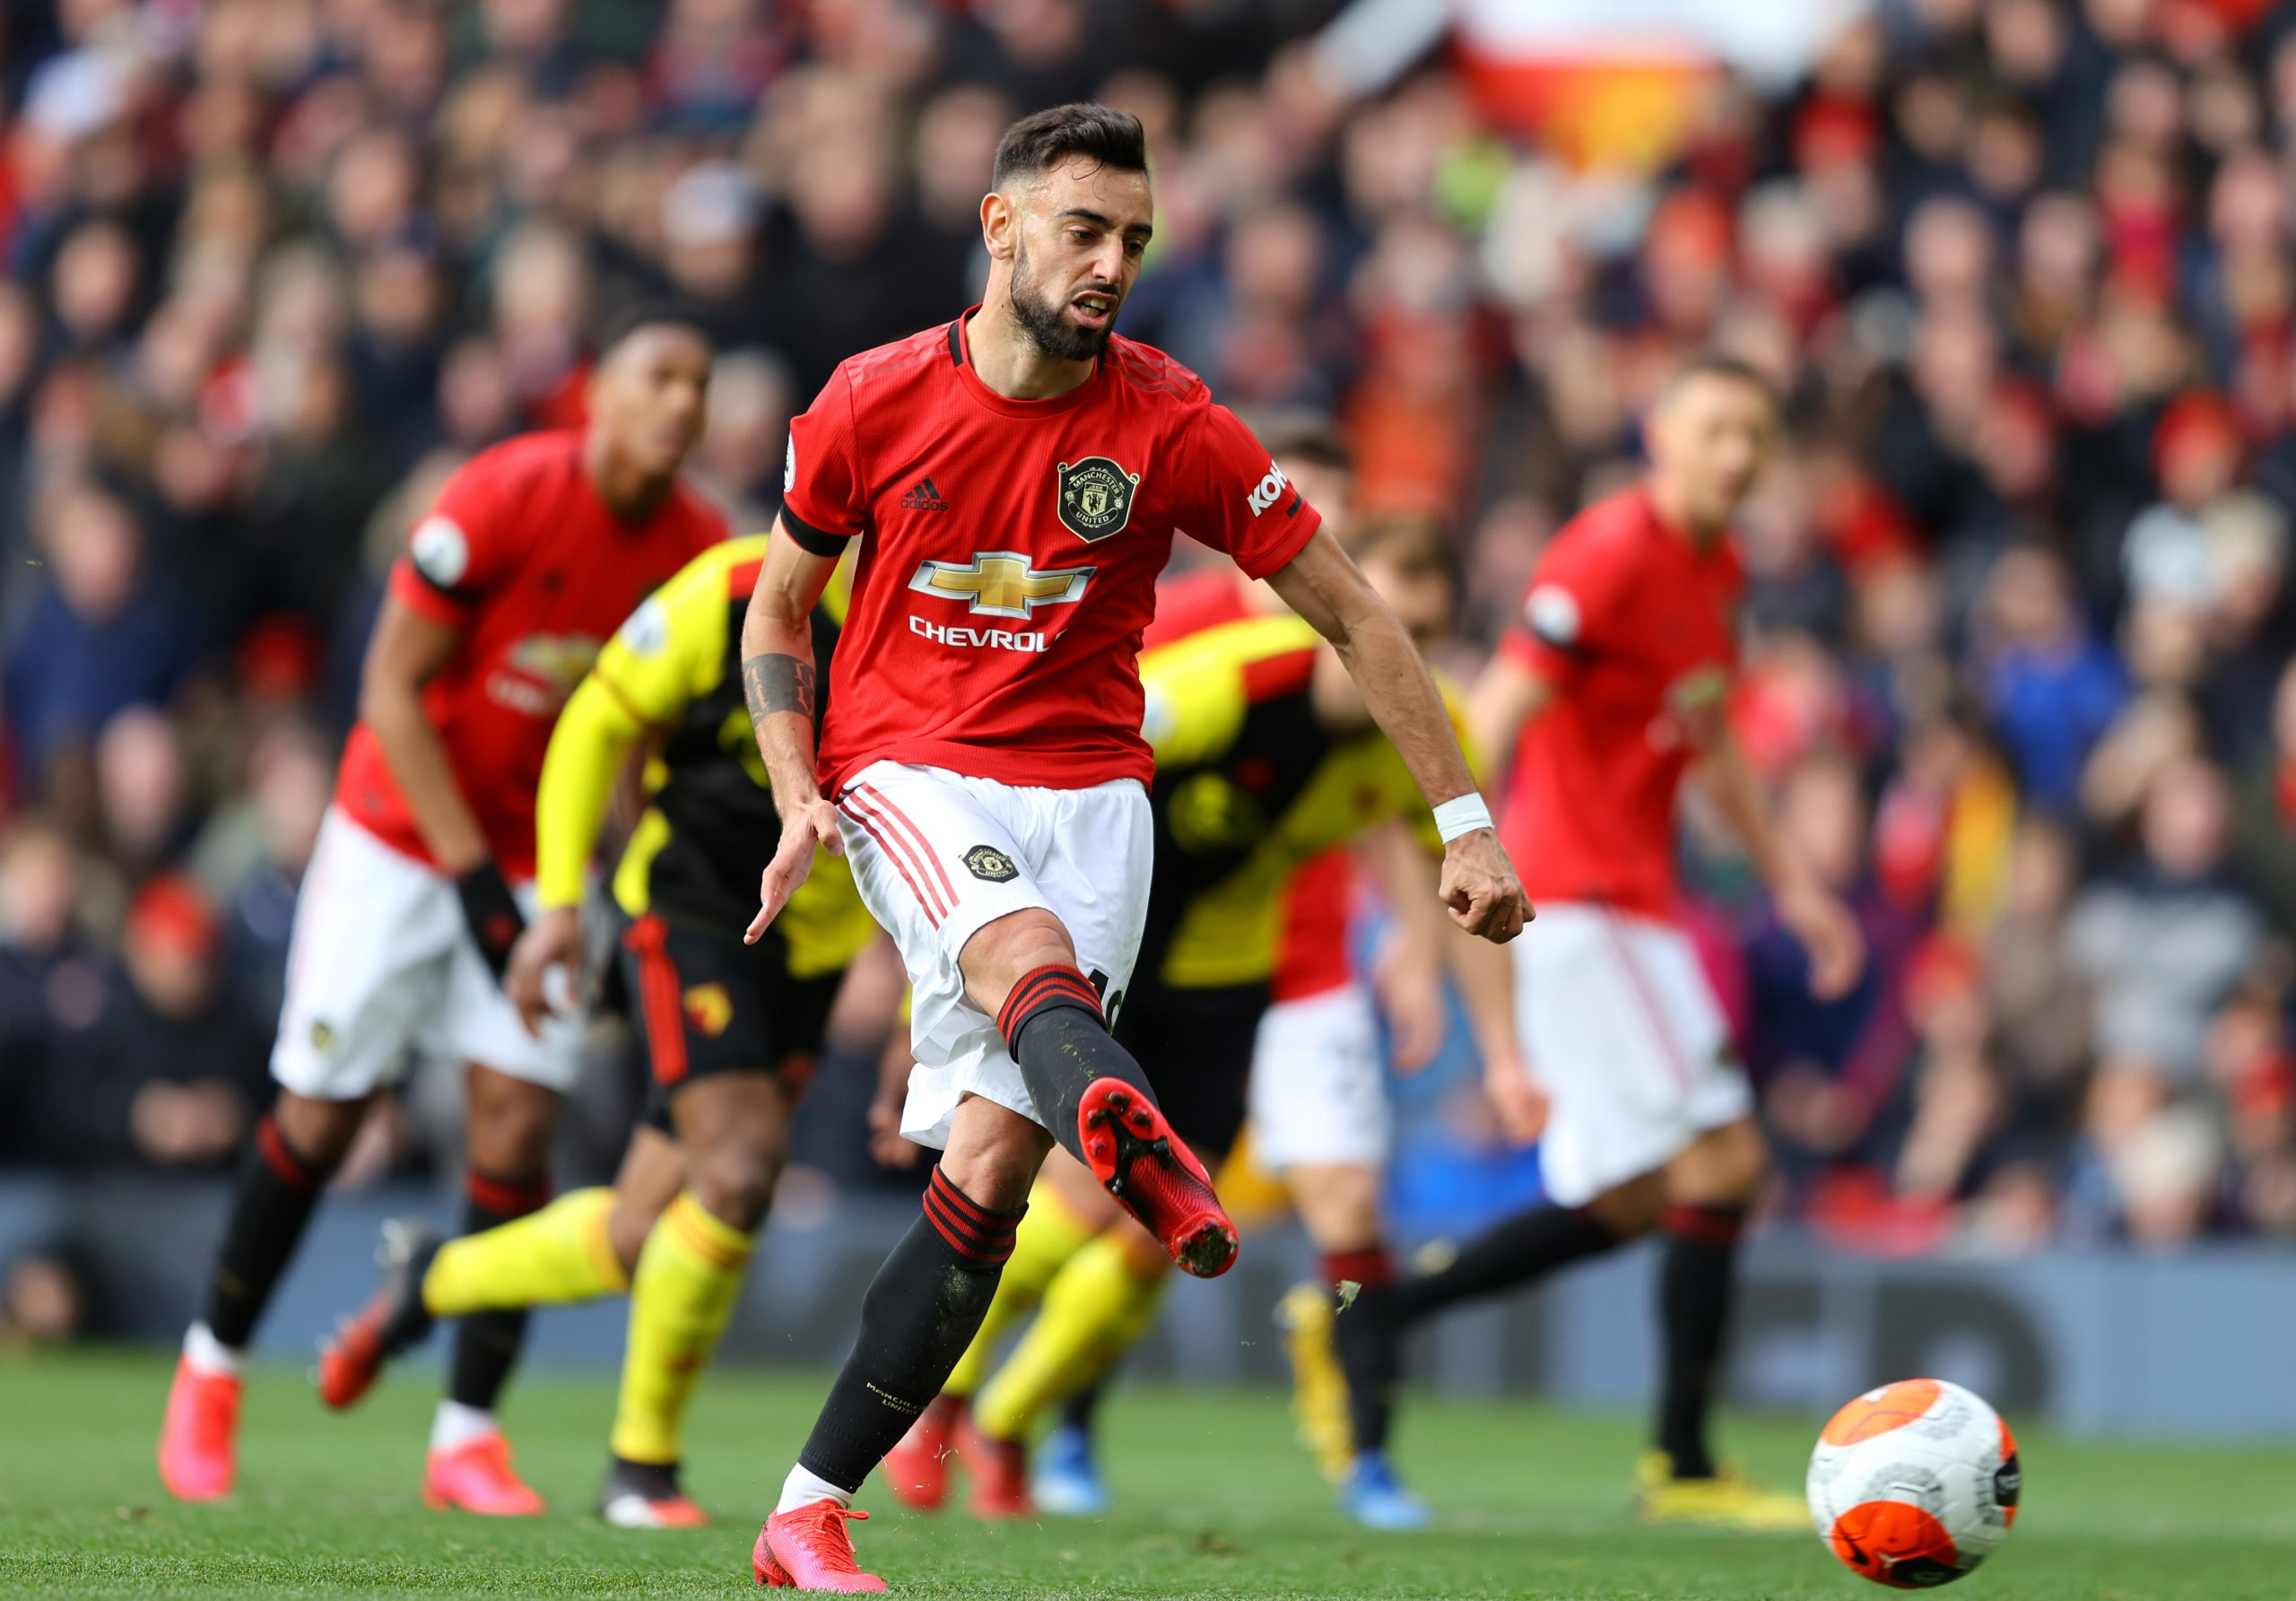 Bruno Fernandes taking a penalty for Manchester united. (GETTY Images)